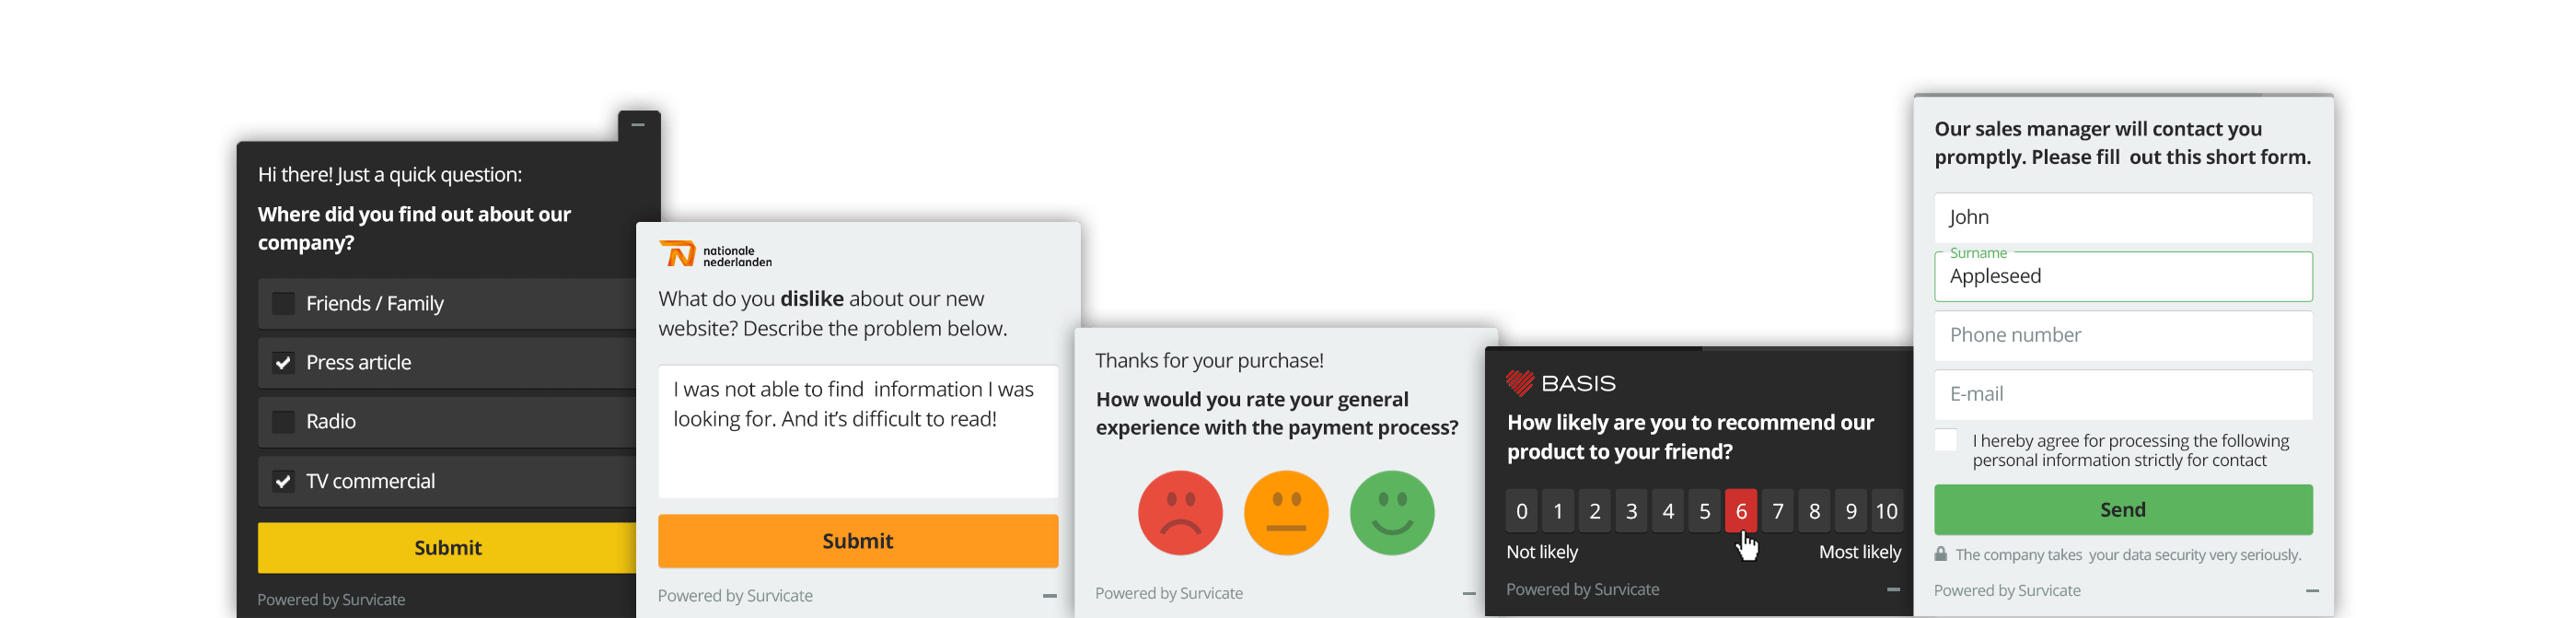 examples of web app surveys